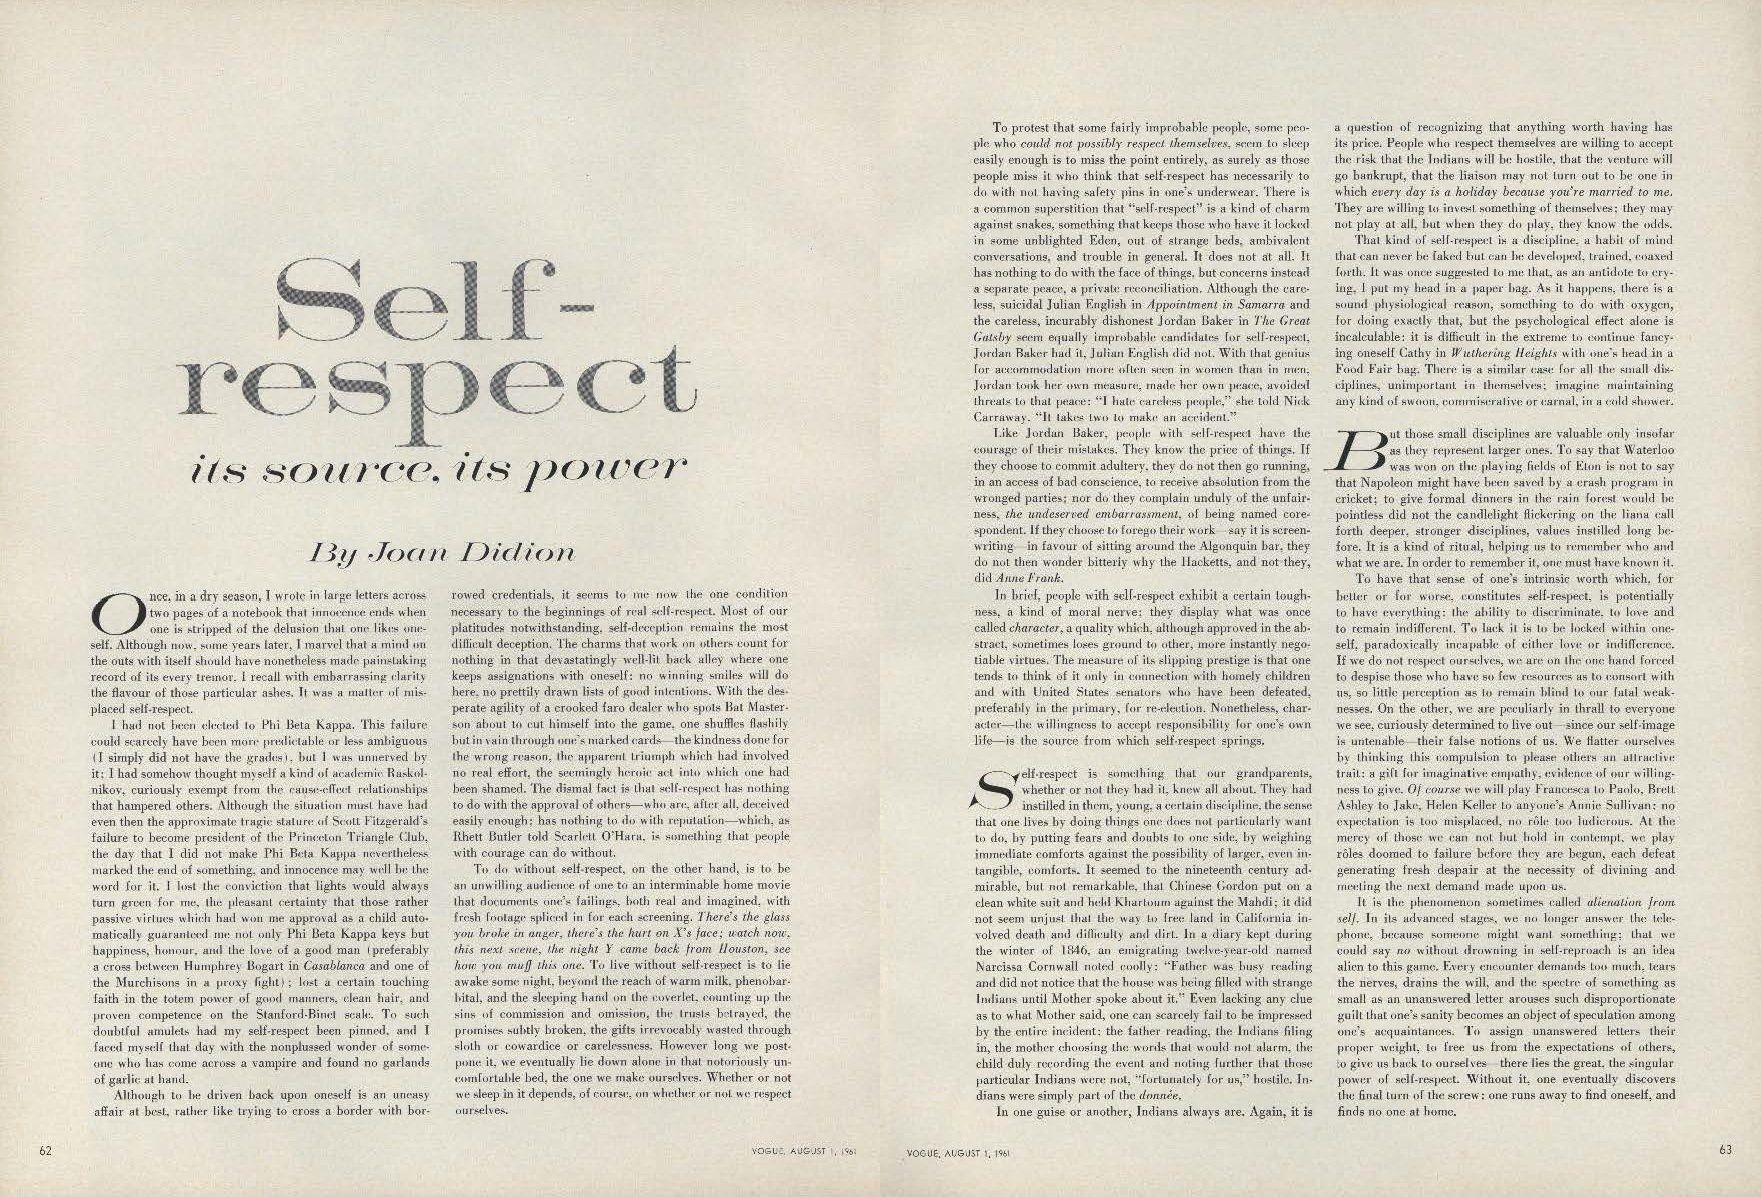 essay on respecting self and others